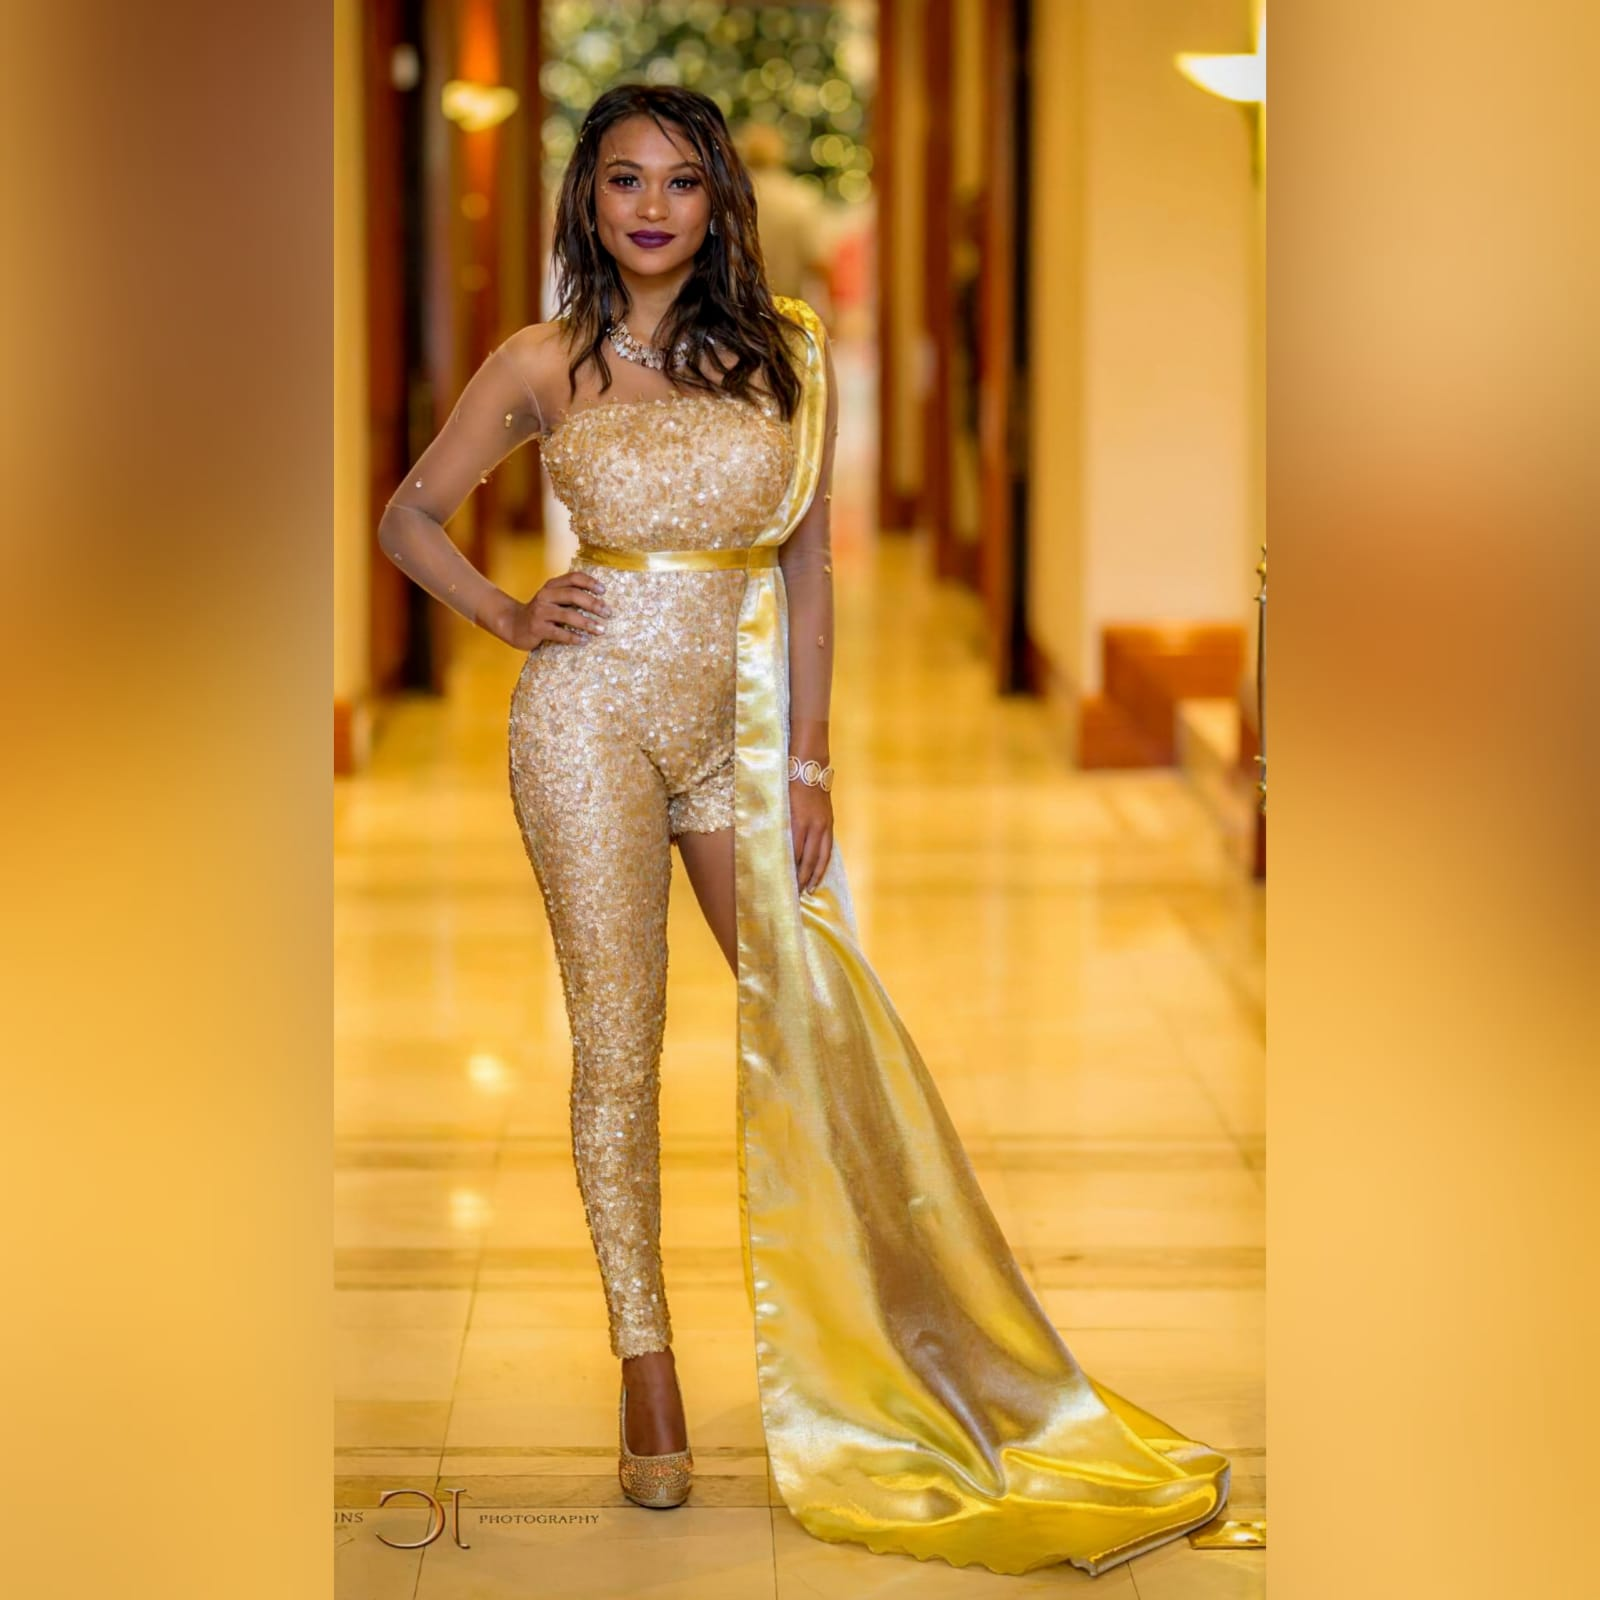 Gold sequins evening wear bodysuit 1 gold sequins evening wear bodysuit with an illusion neckline and sleeves, detailed with gold beads. With a long and short leg. Detachable side gold train.